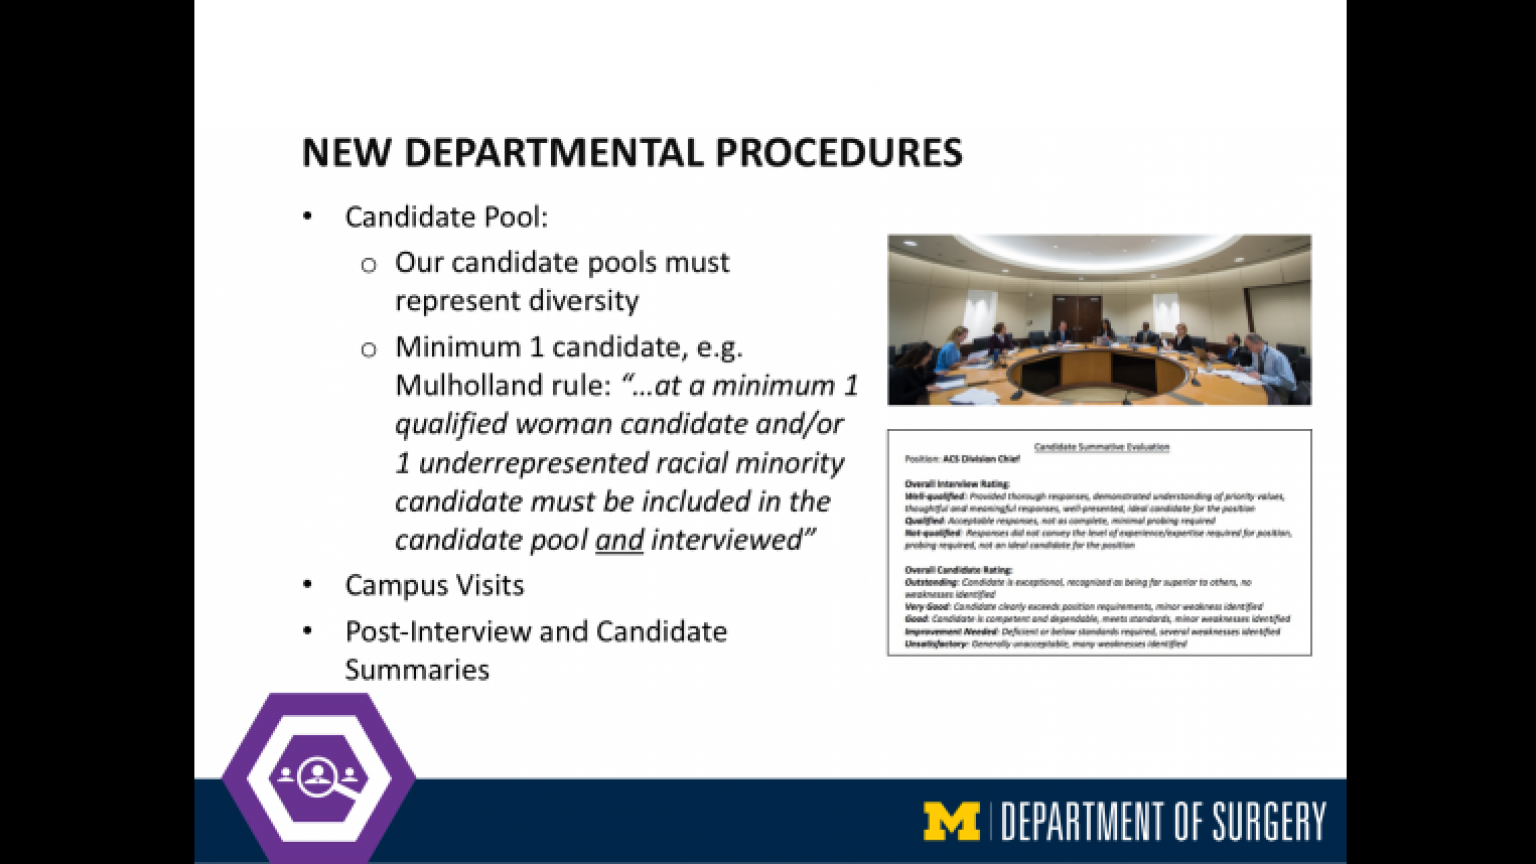 """New Departmental Procedures - thirty-sixth slide of """"This Is What We Stand For"""" presentation"""